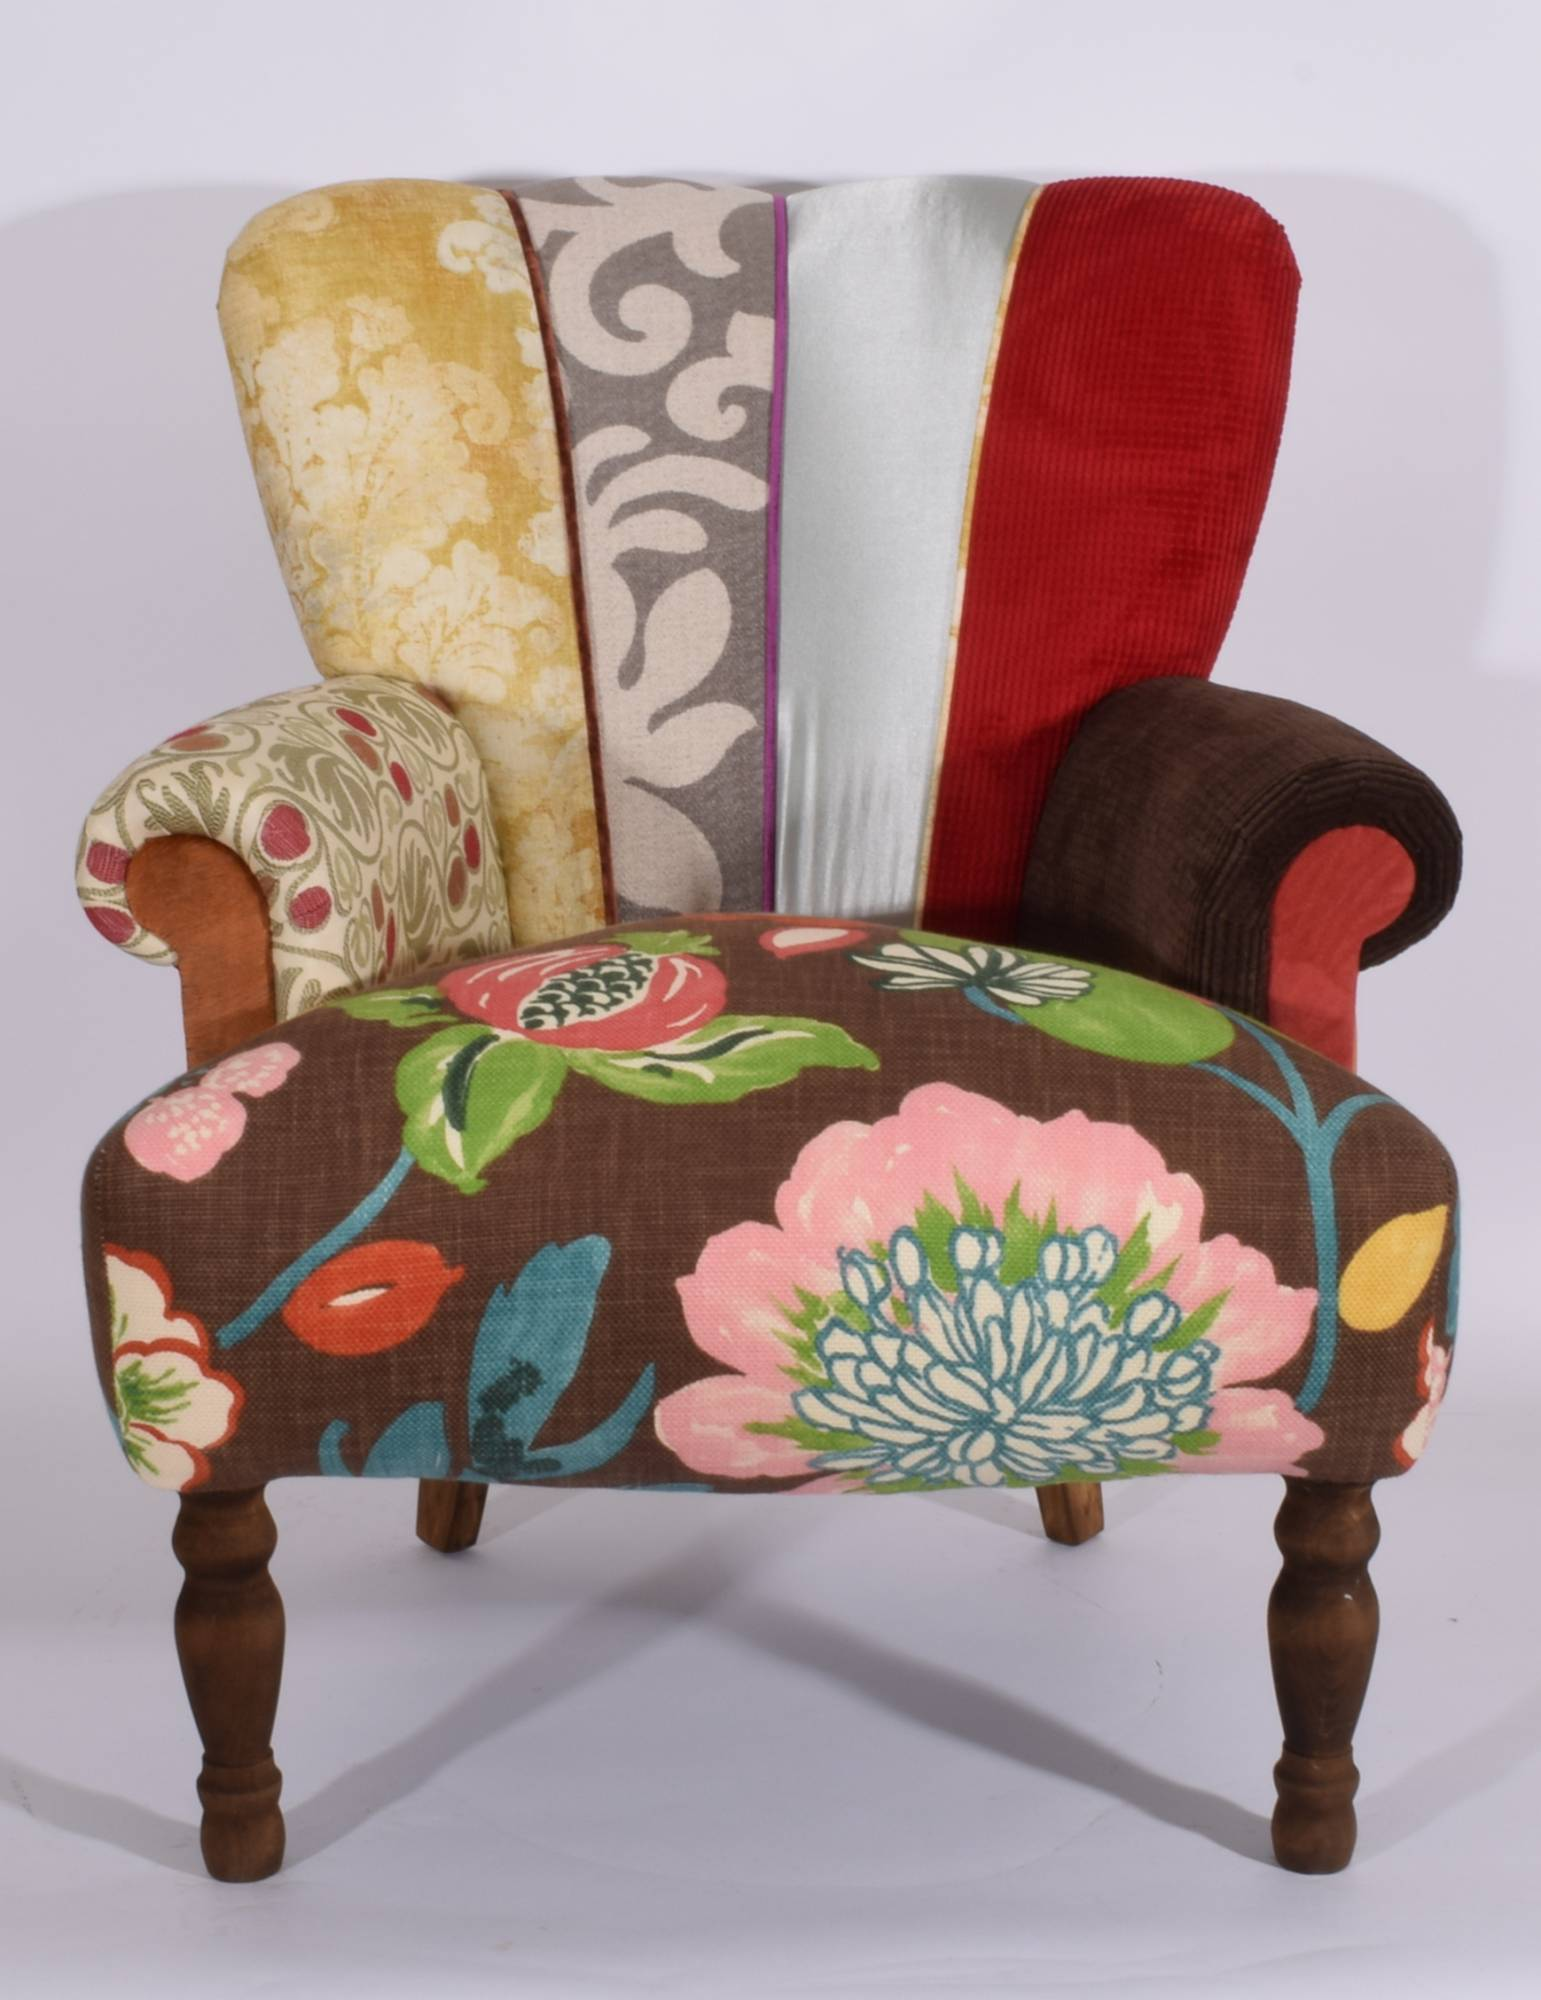 Quirky harlequin chair 244 bedroom furniture for Quirky furniture